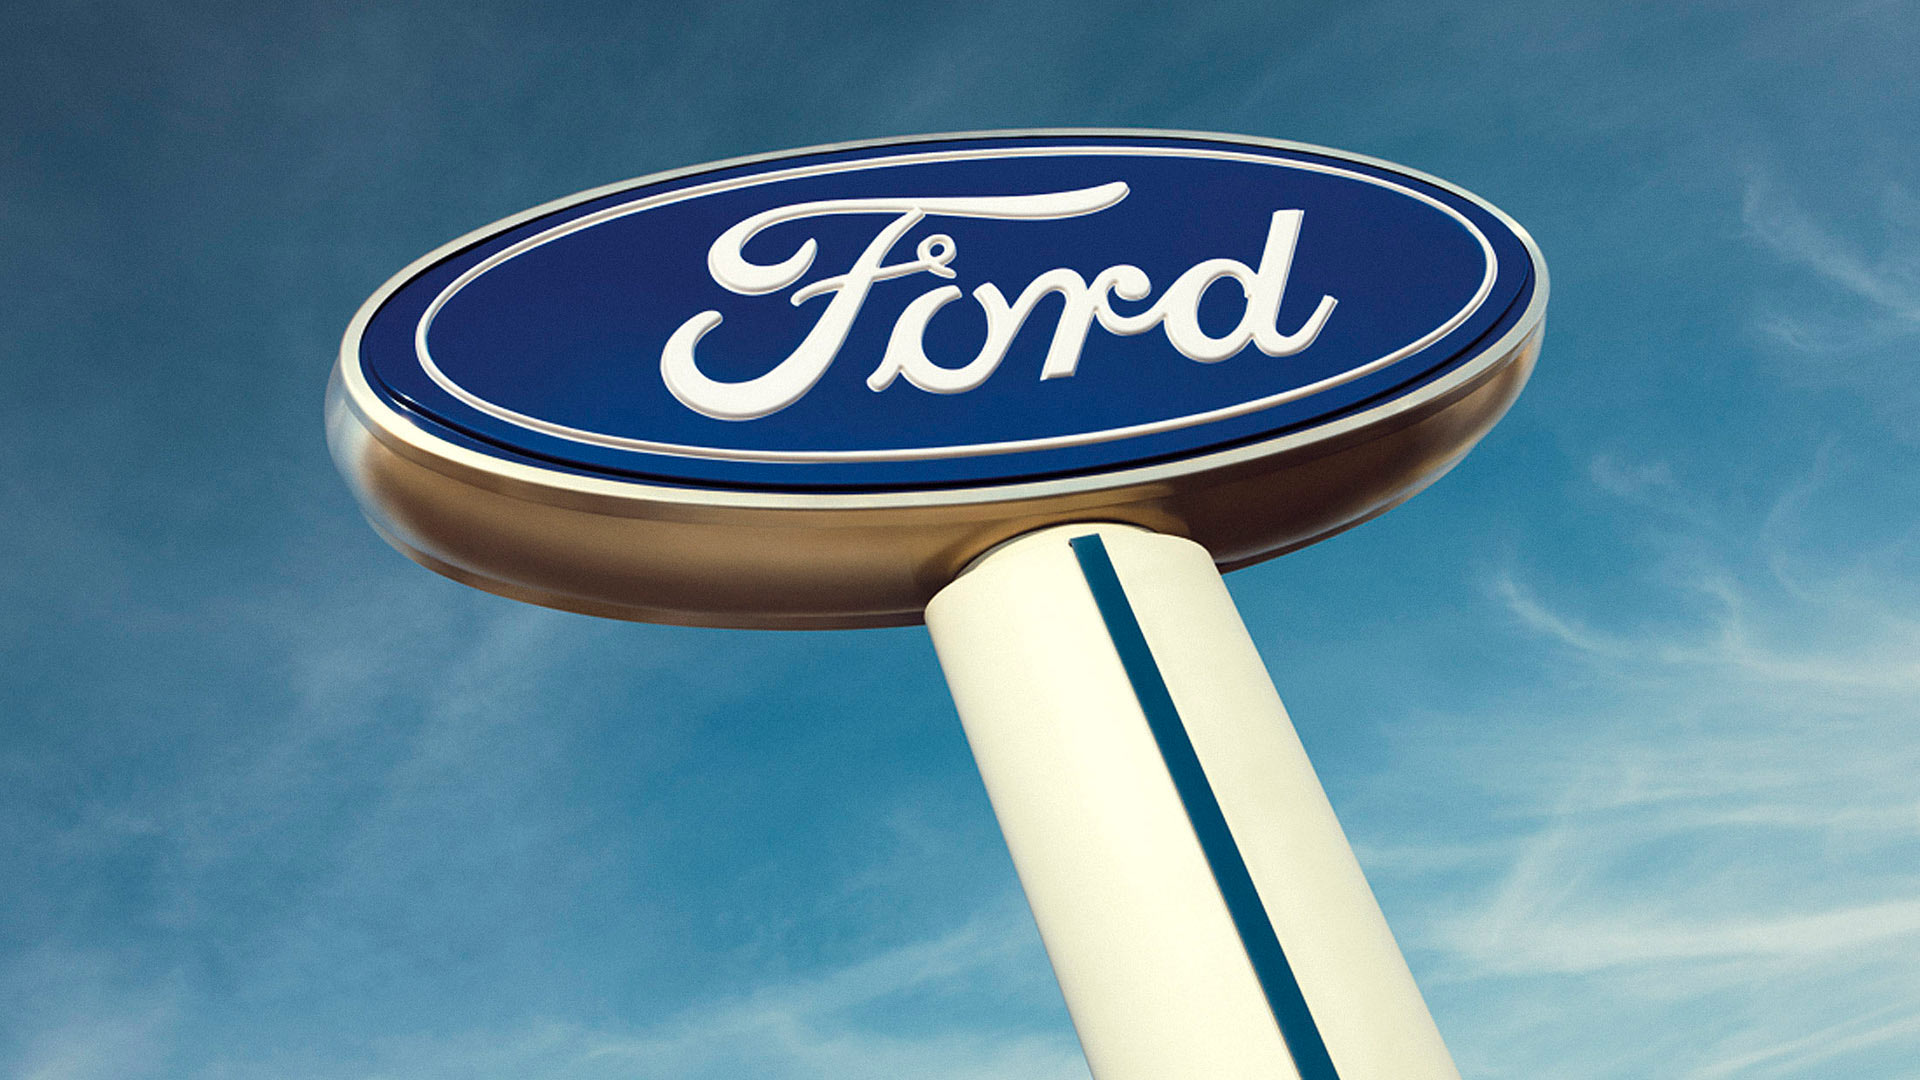 The Ford Motor Company sign.